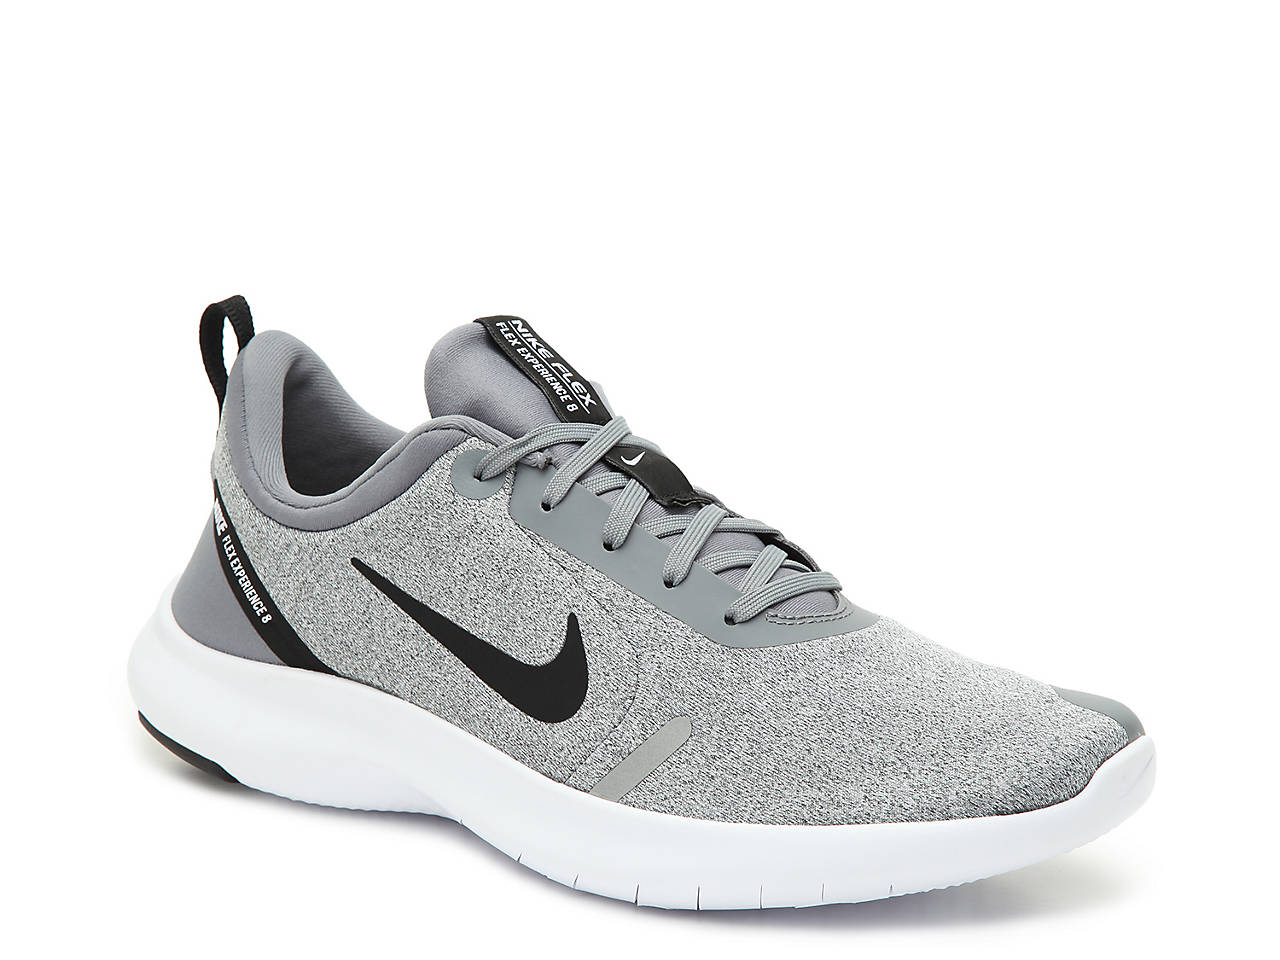 Nike Flex Experience Rn 8, Men's Road Running Shoes